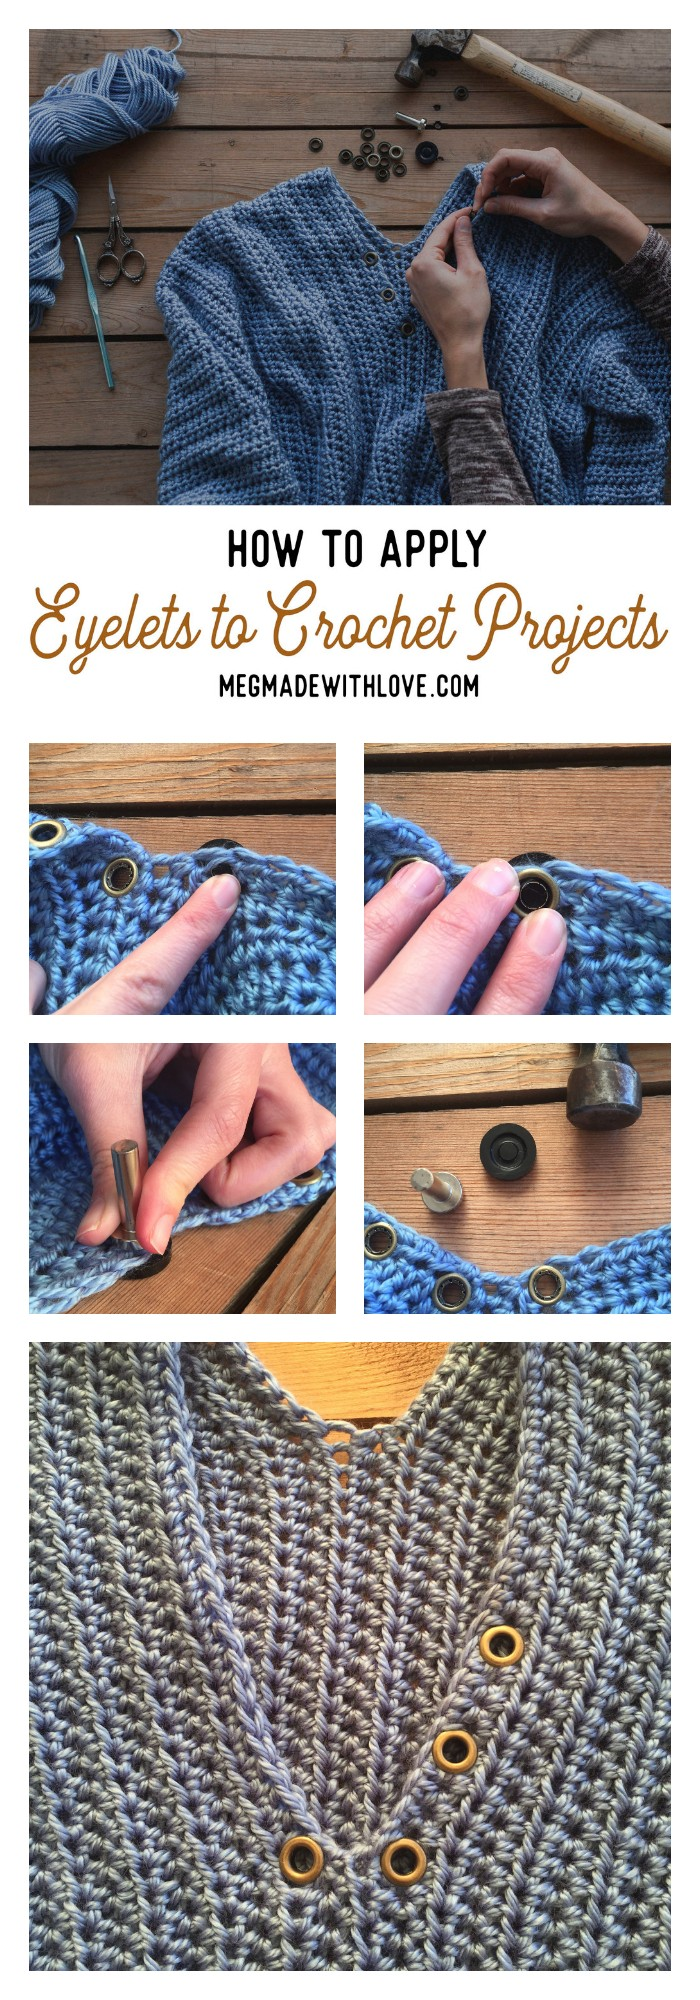 How to Apply Eyelets to Your Crochet Projects